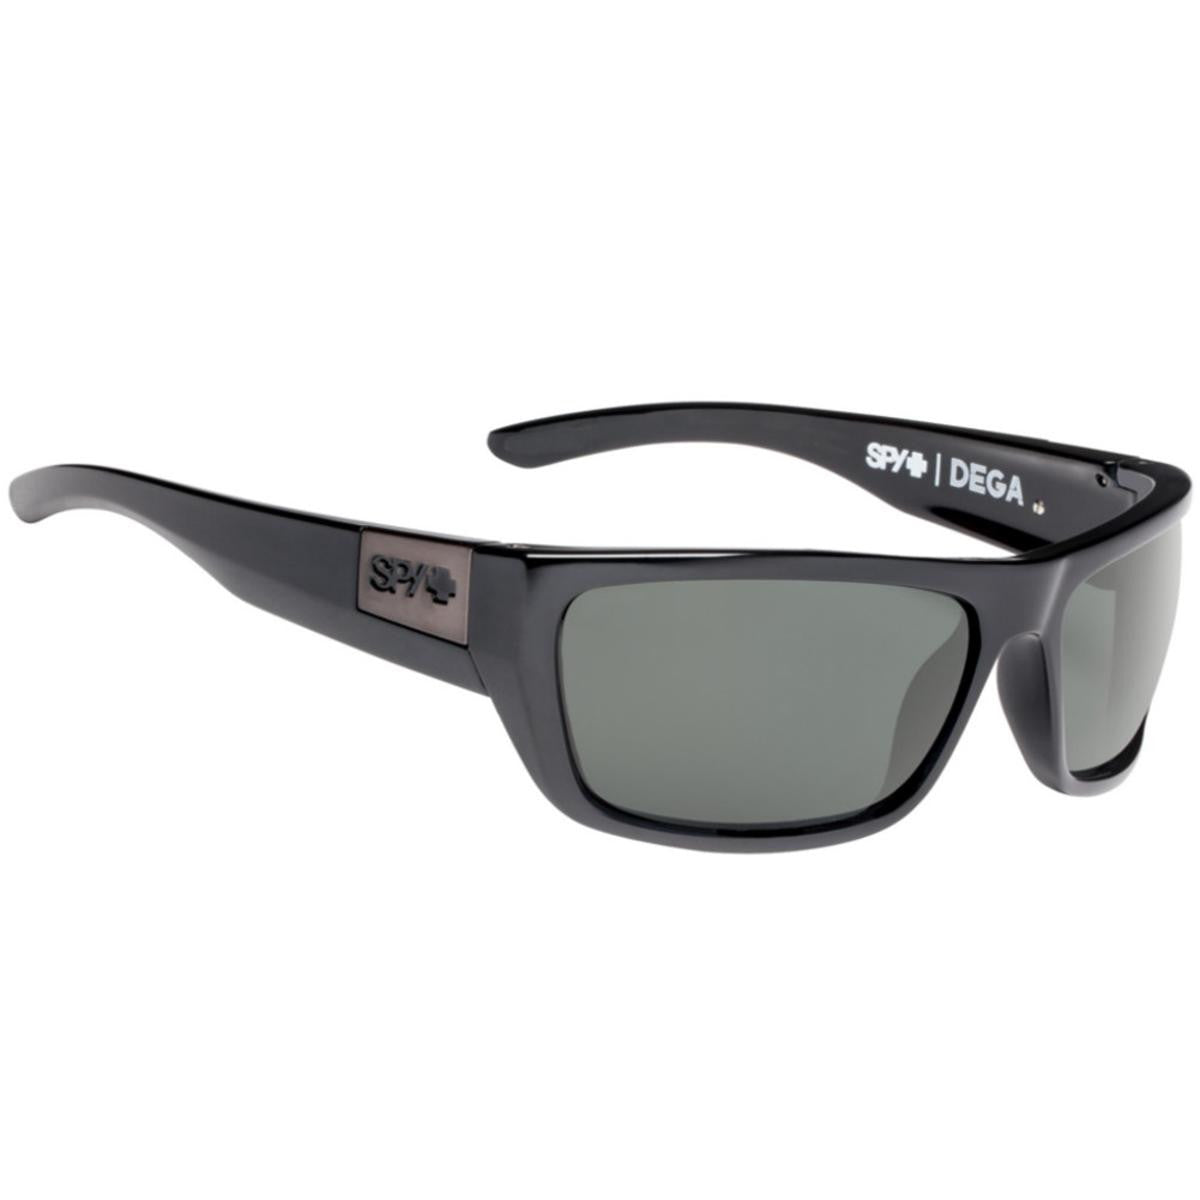 Spy Dega Men's Sunglasses